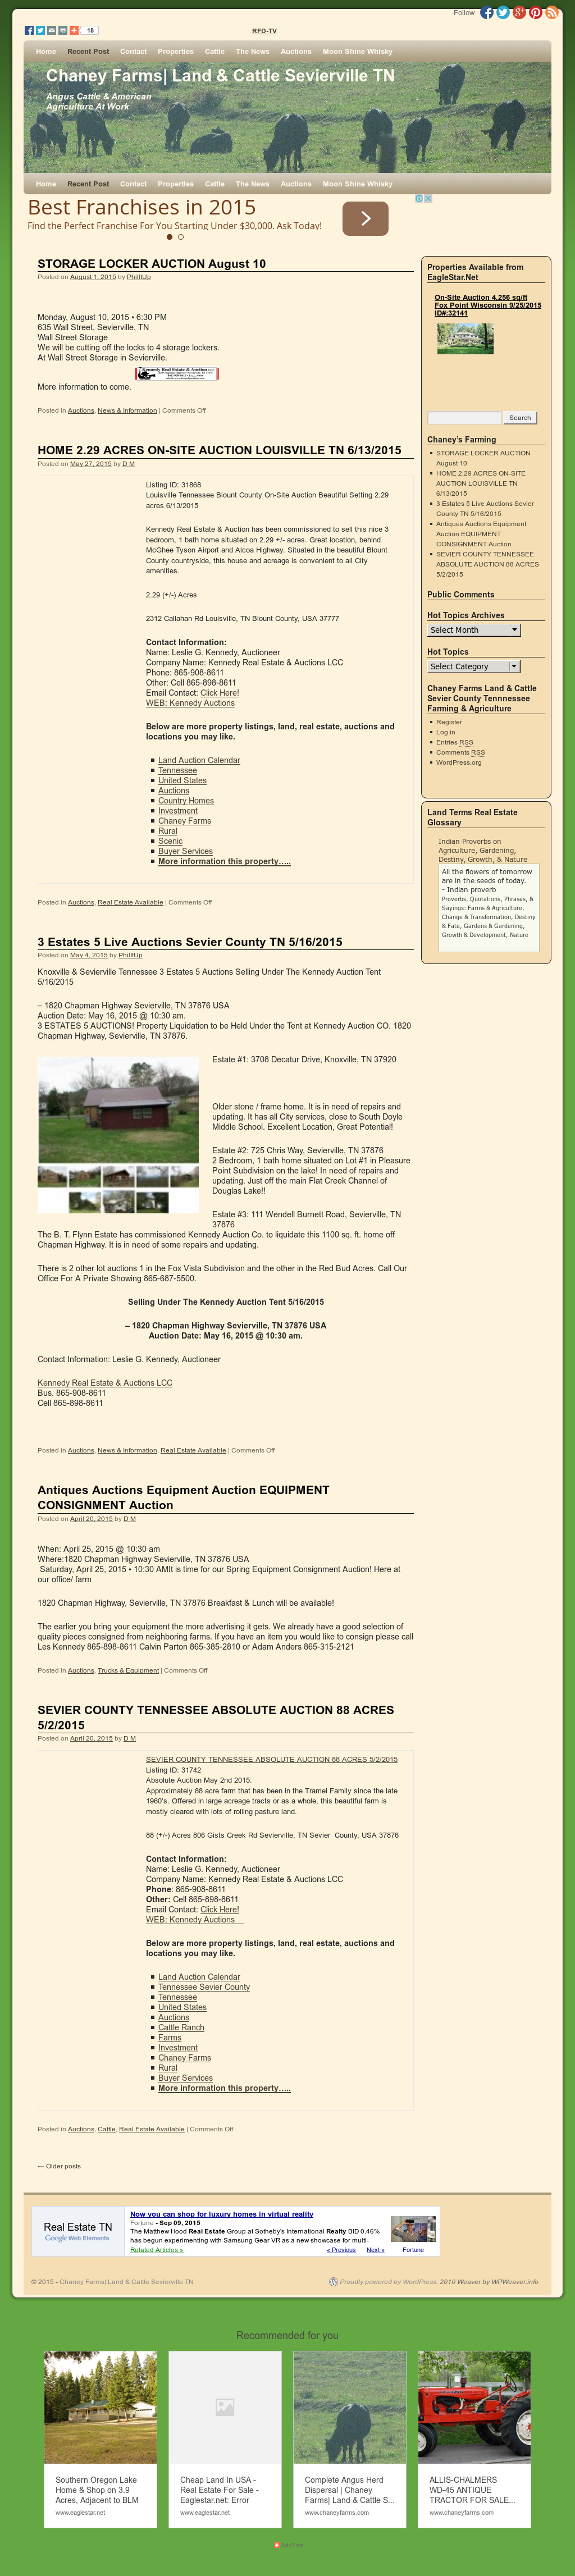 Chaney Farms Competitors, Revenue and Employees - Owler Company Profile